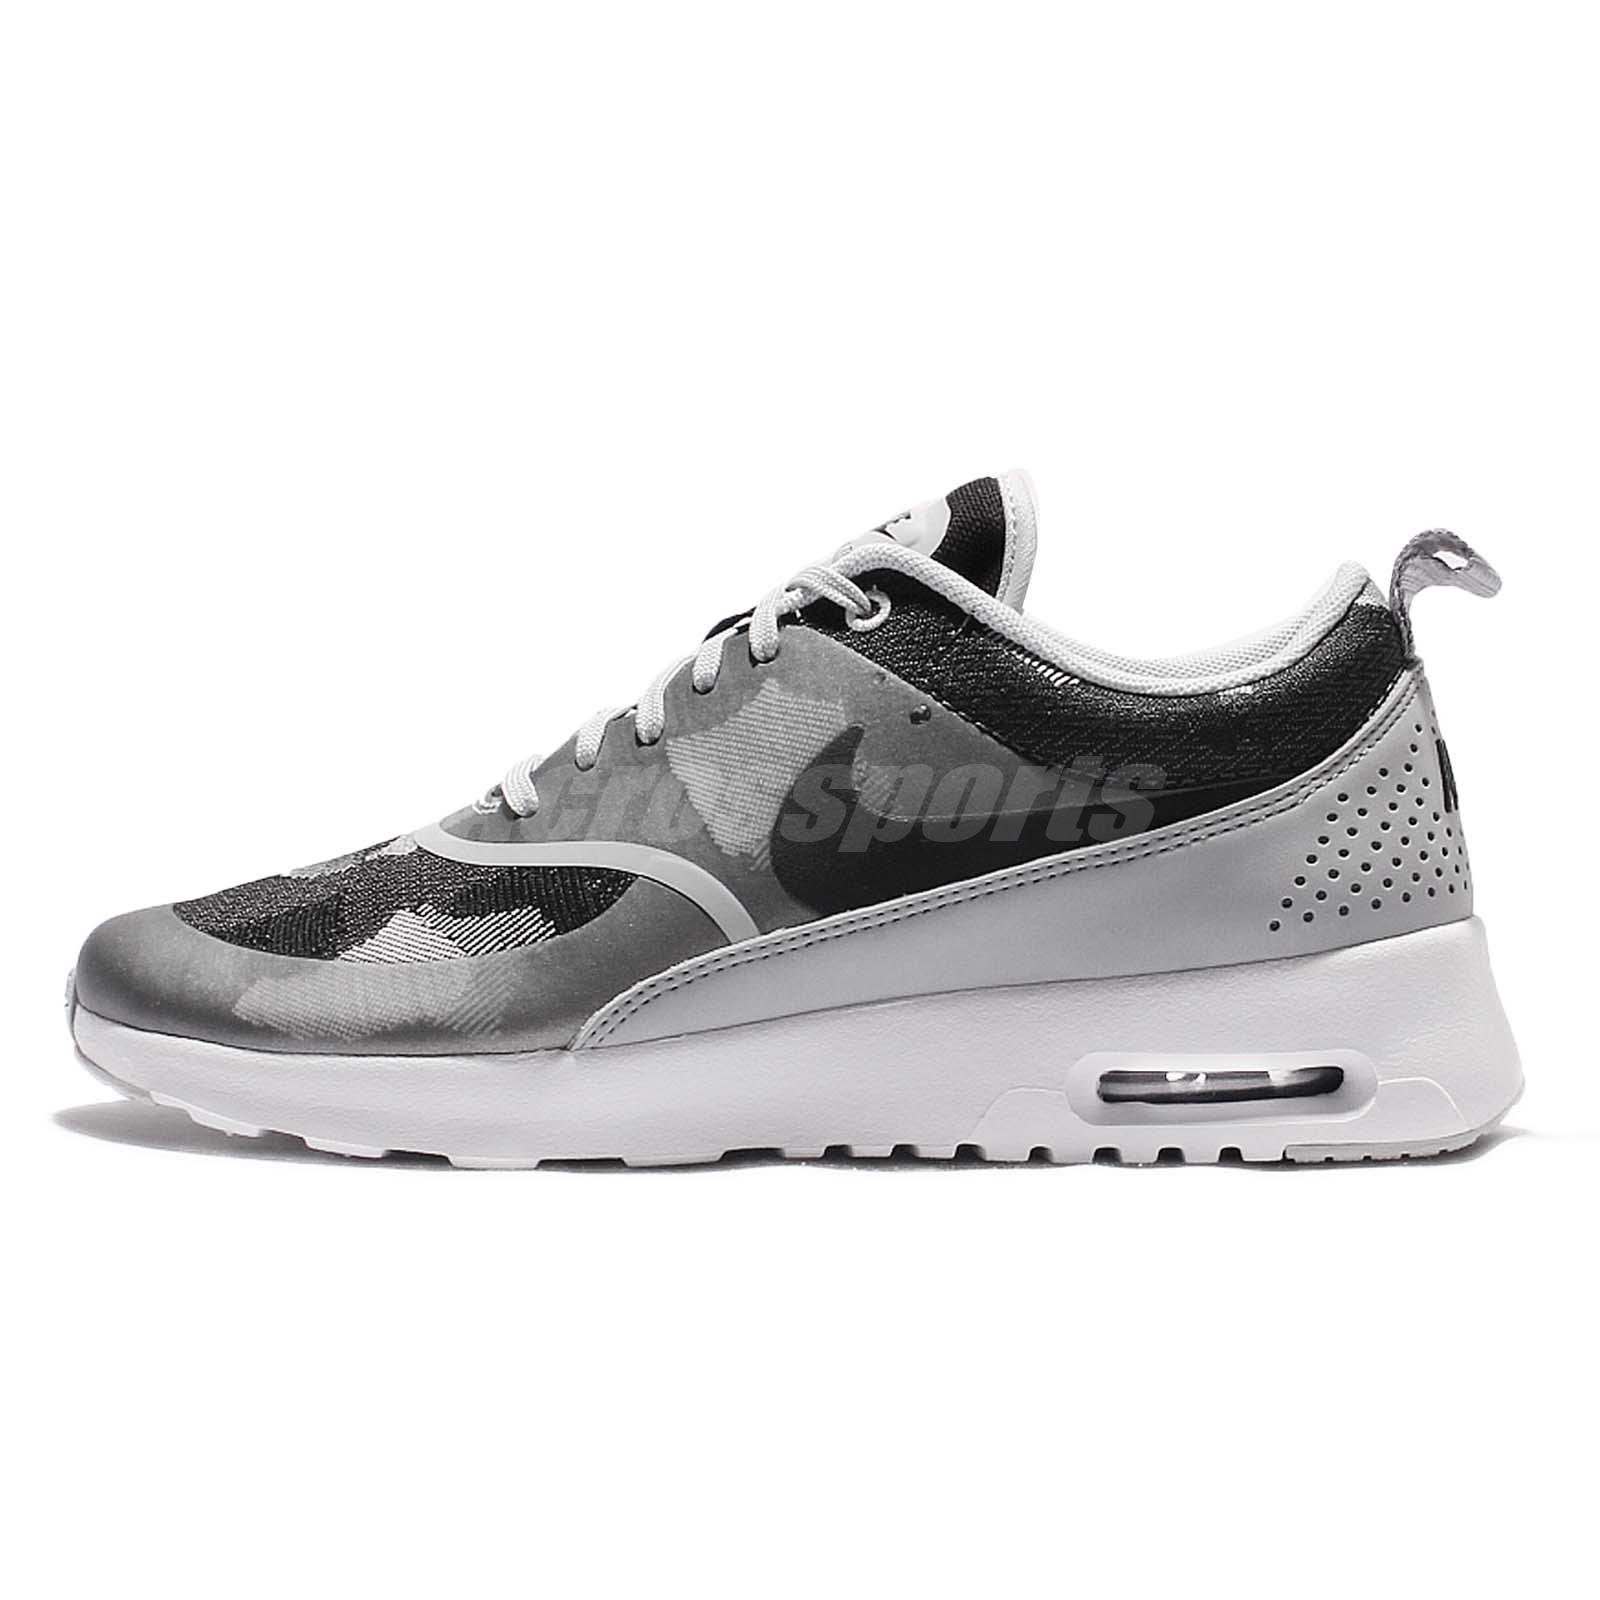 59ef346315 Wmns Nike Air Max Thea JCRD Grey Black Womens Running Shoes Sneakers  844955-002 ...